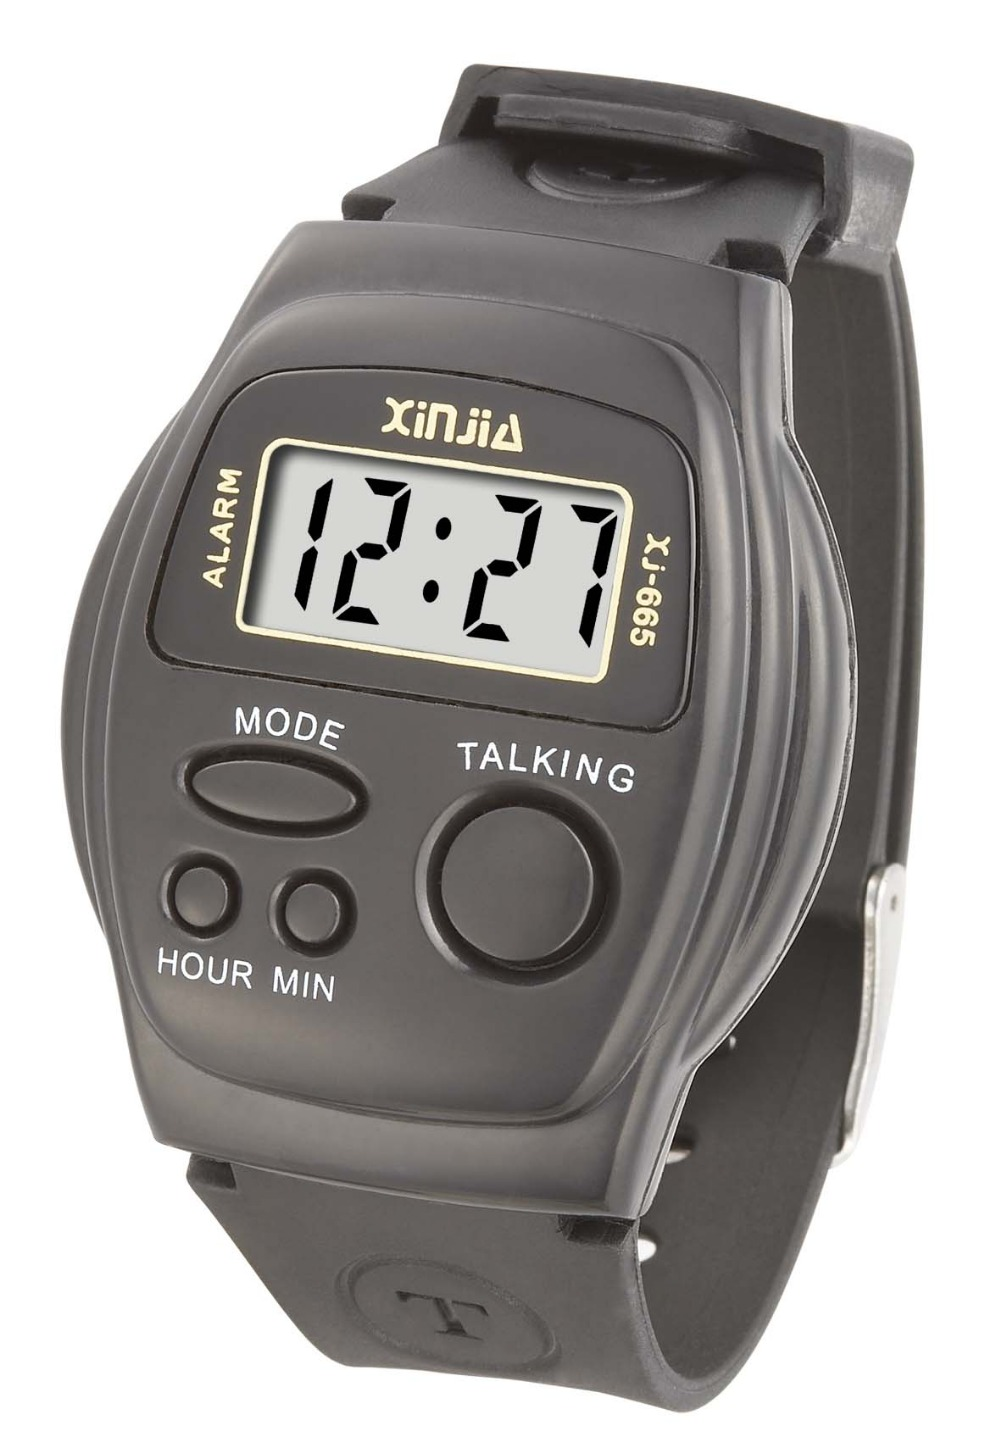 and talking visually the watches blind for impaired blinds watch wrist